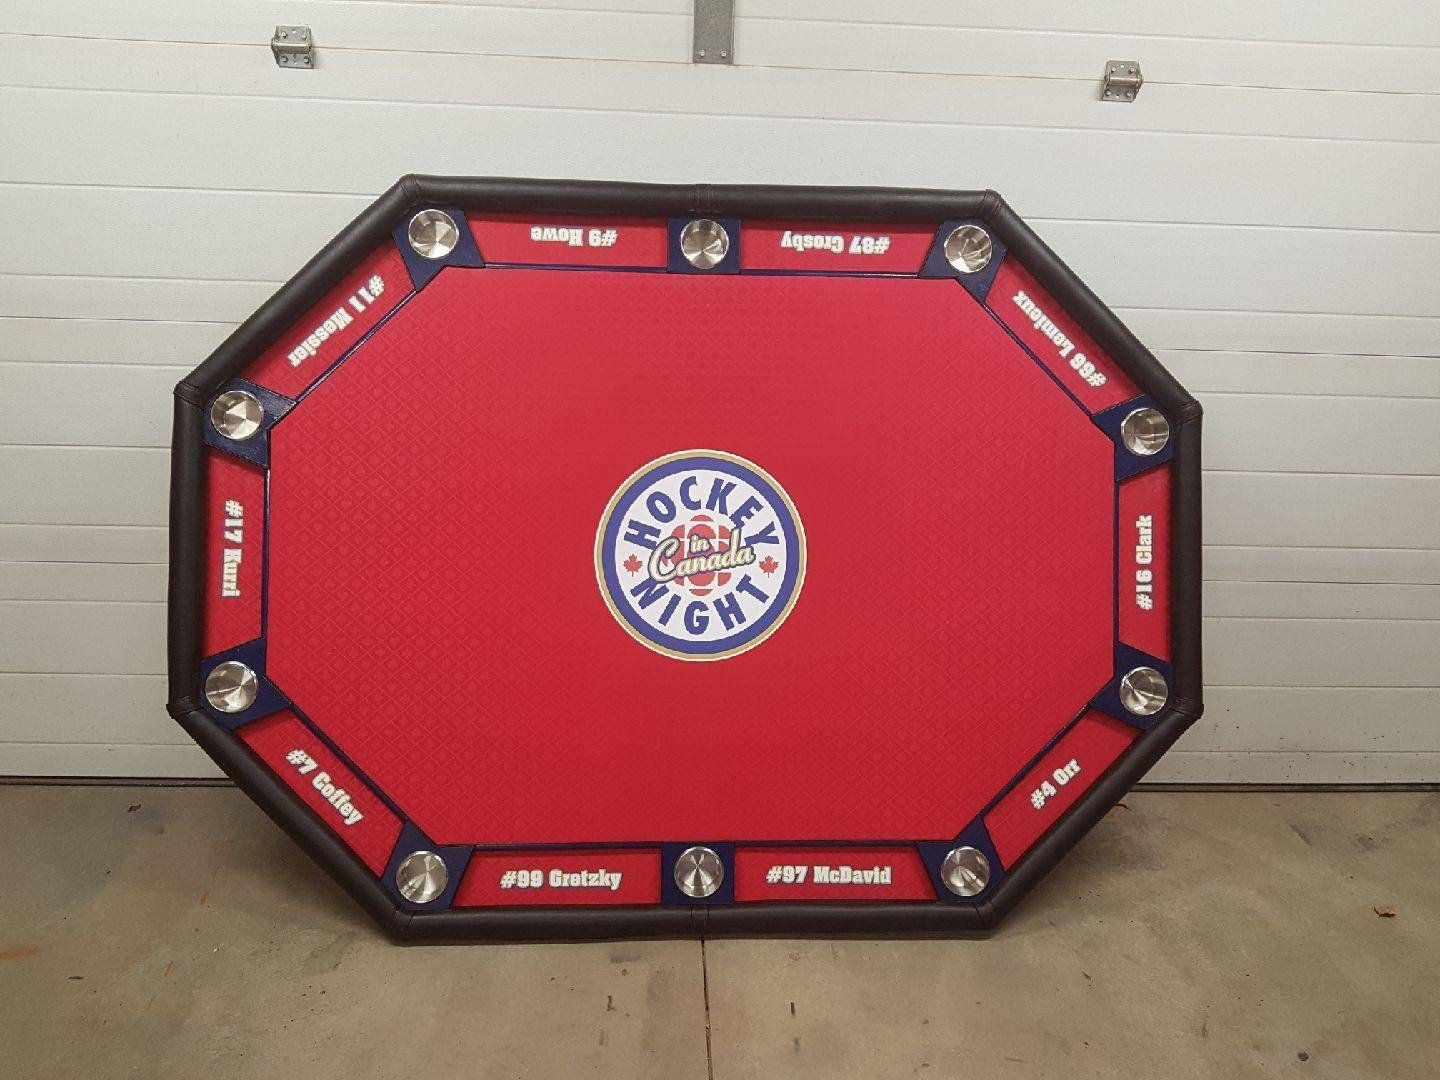 Poker Table Custom Built 8 Or 10 Man Sizing Table Top Fabric Vinyl Logo Cup Holders Chip Tray Personalized Pokertable Pedestal L Poker Table Custom Build Poker